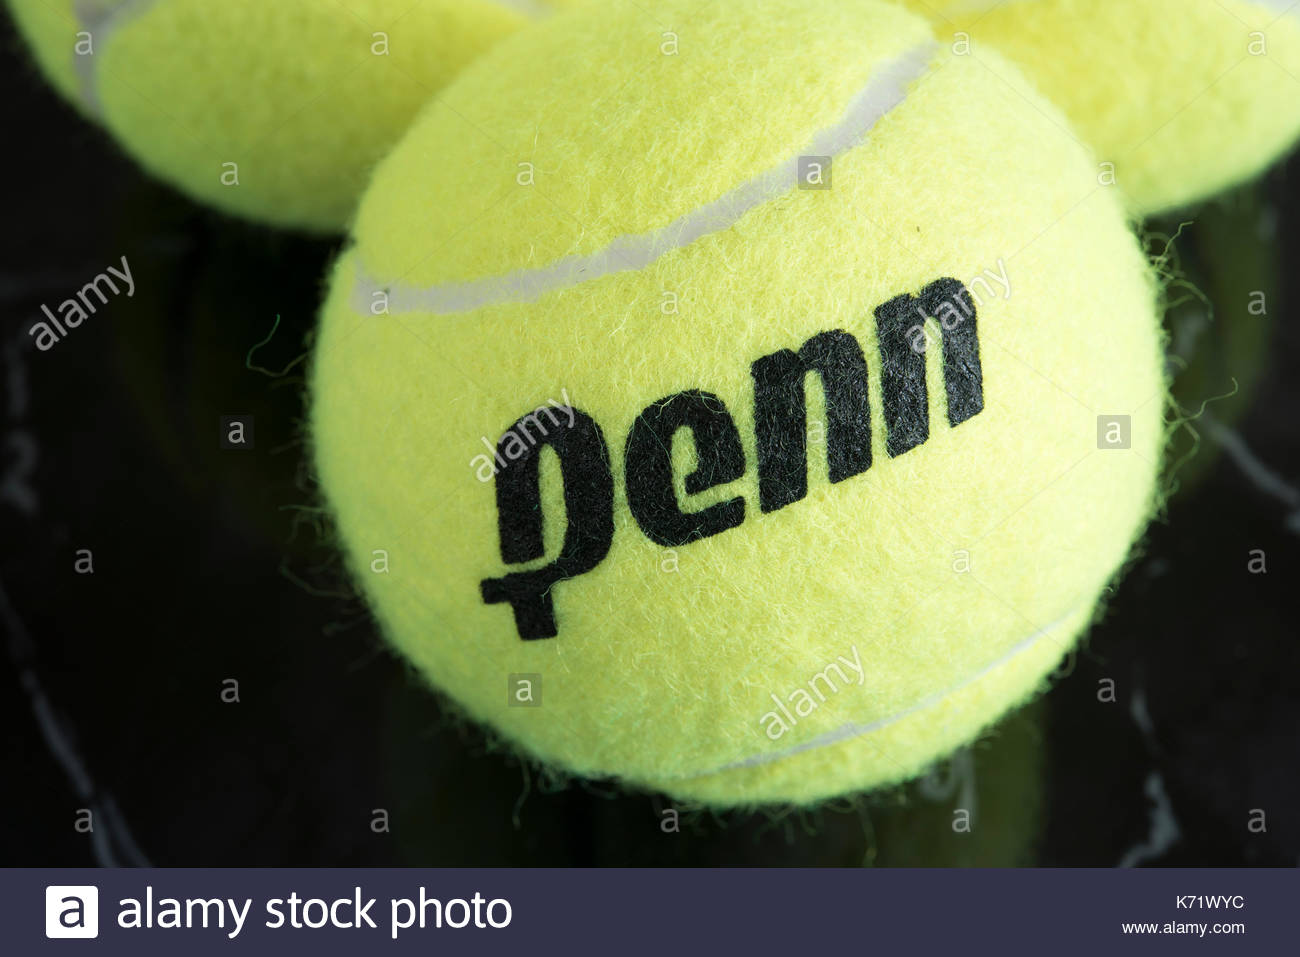 Penn company tennis ball. The yellow felt on it has two white lines ...